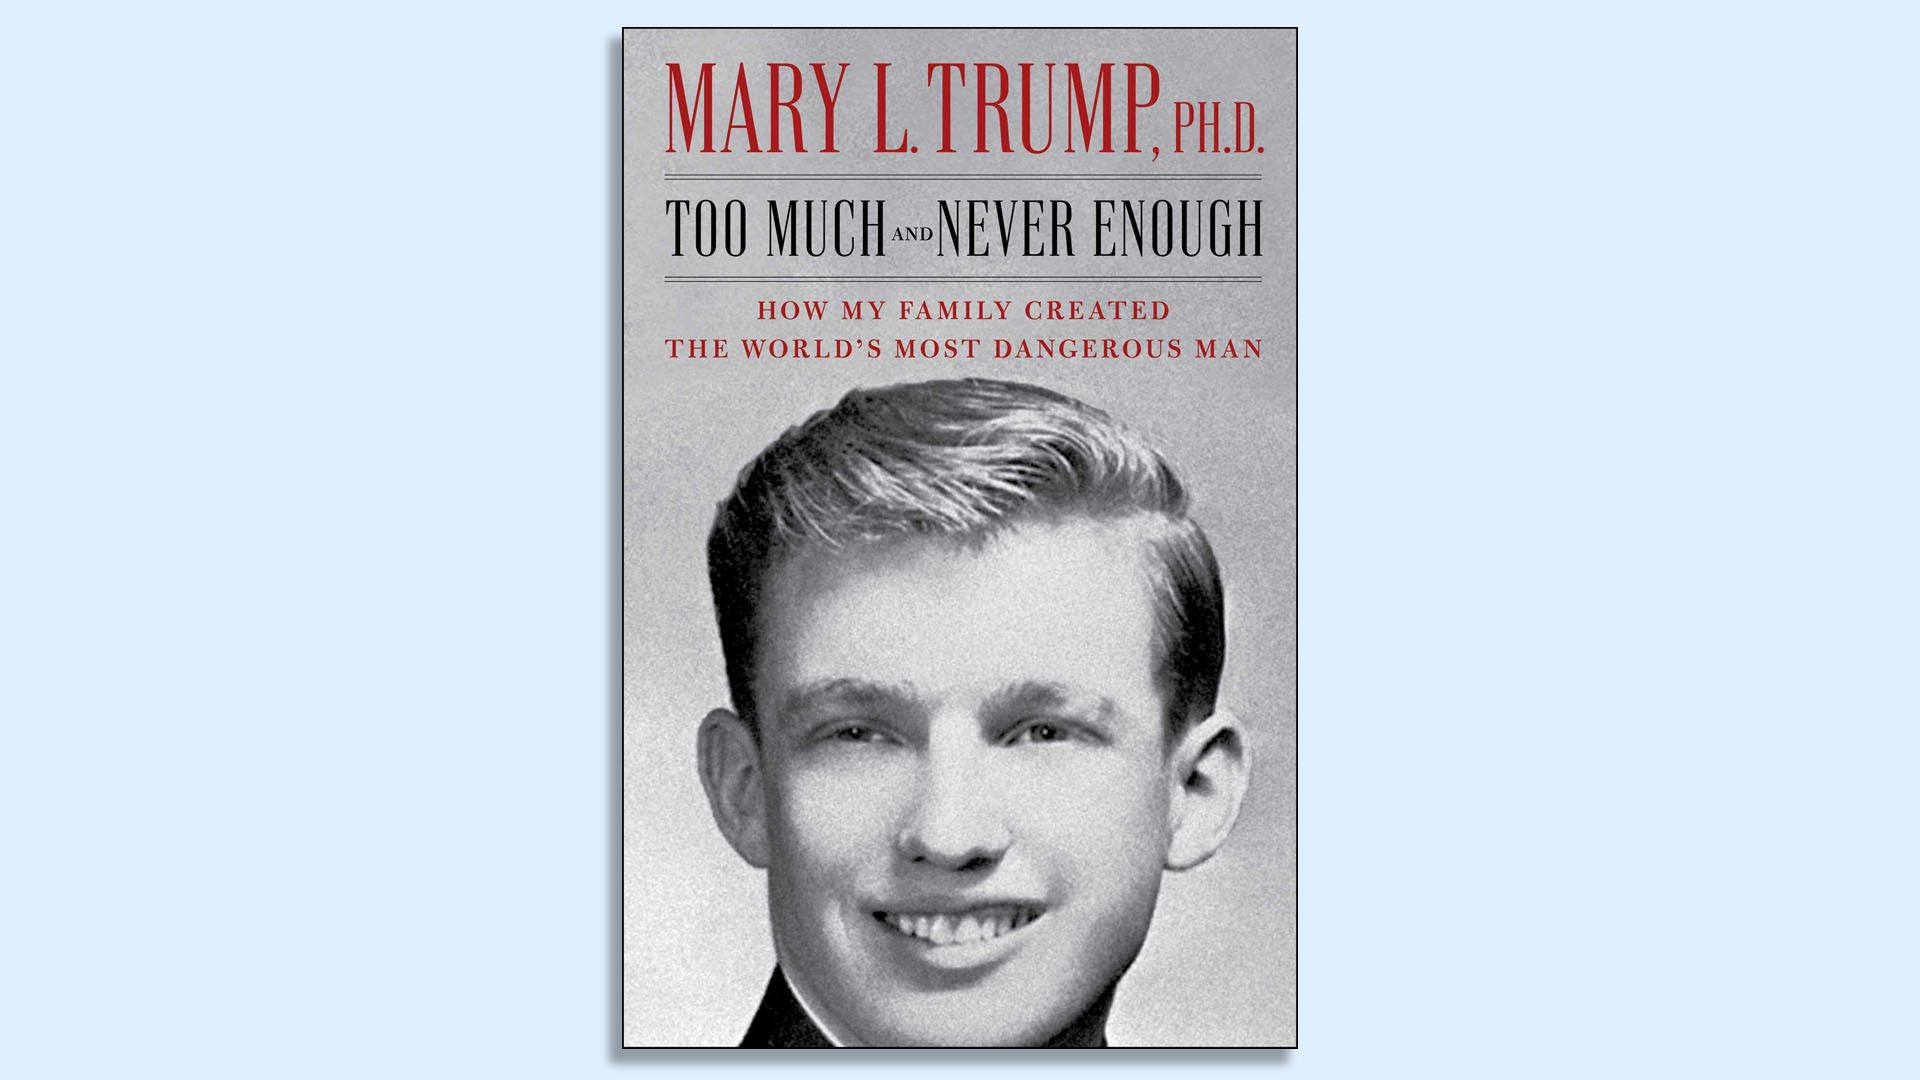 Mary Trump book: How she leaked Trump financials to NYT - Axios